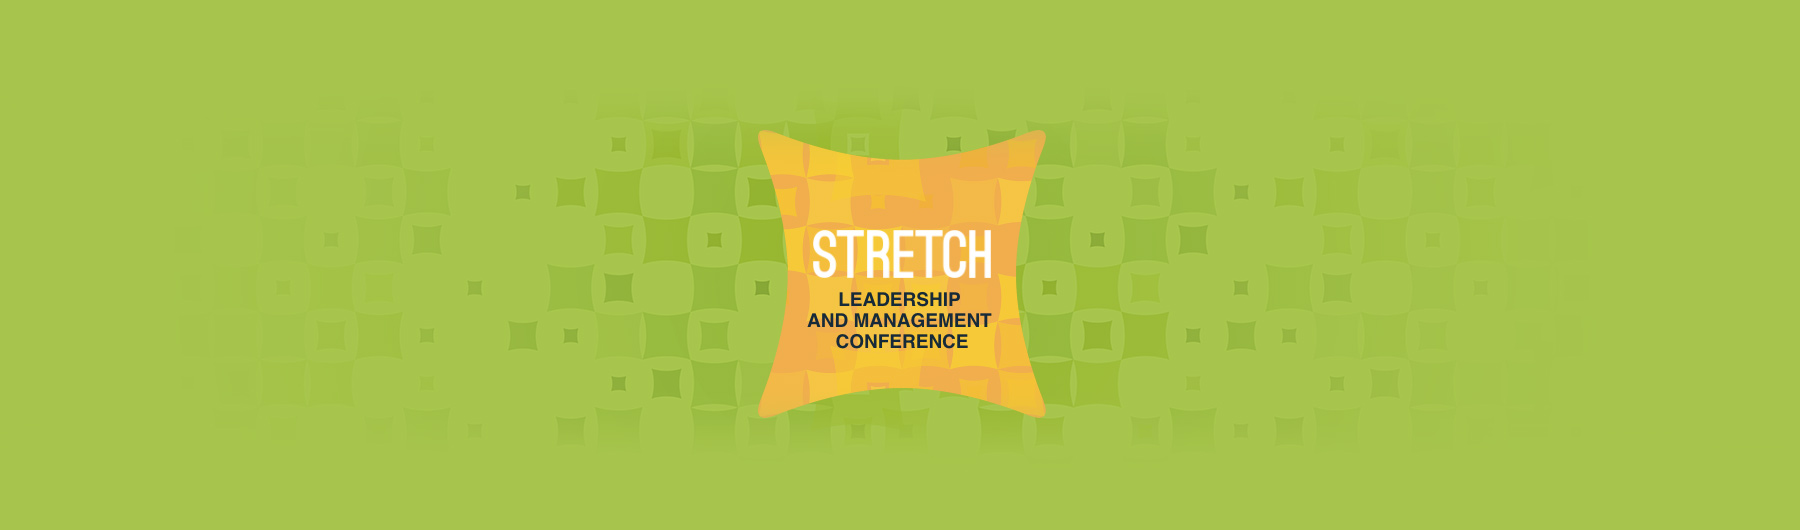 Stretch Conference 2018